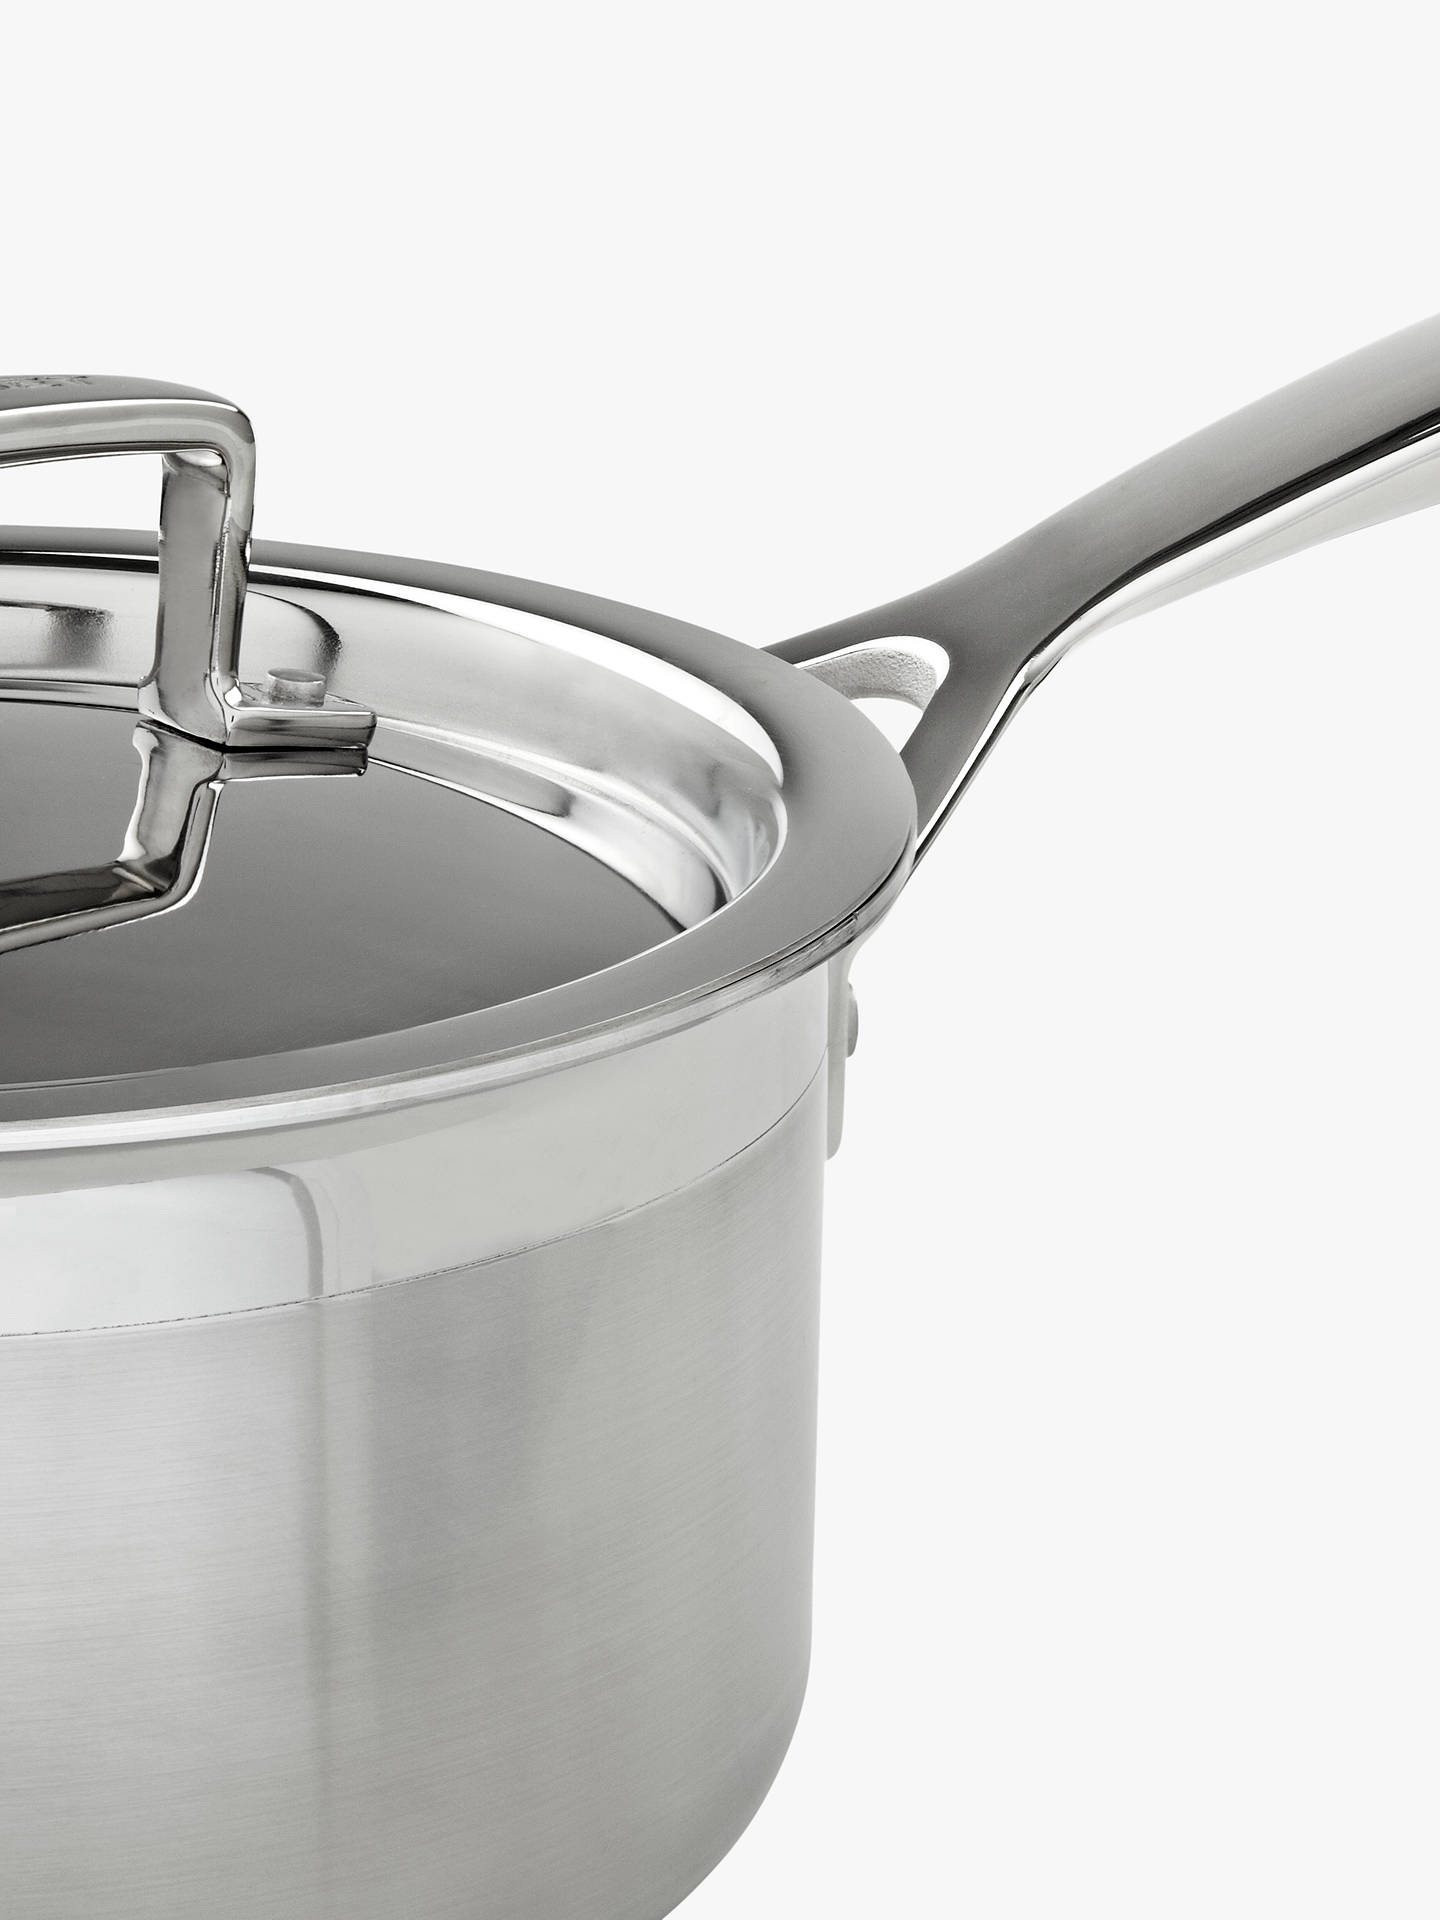 BuyLe Creuset 3-Ply Stainless Steel Lidded Saucepan, 16cm Online at johnlewis.com